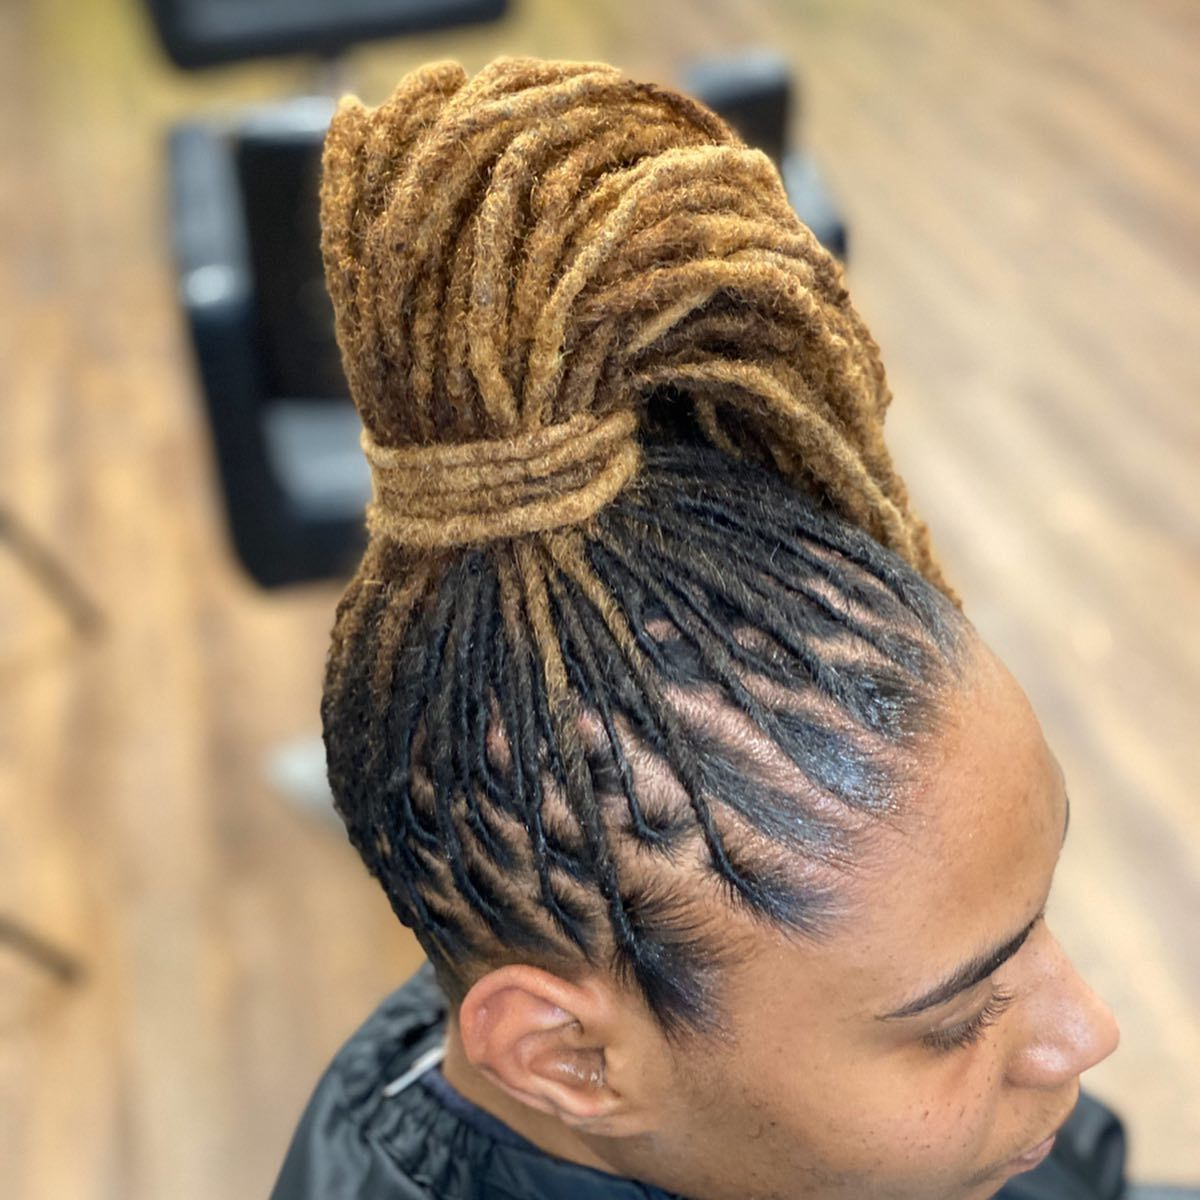 High Pony Karibbean Kinks Natural Hair Products Available For Purchase At The Salon Or Online At Www Karibbean In 2020 Natural Hair Styles Natural Hair Salons Hair